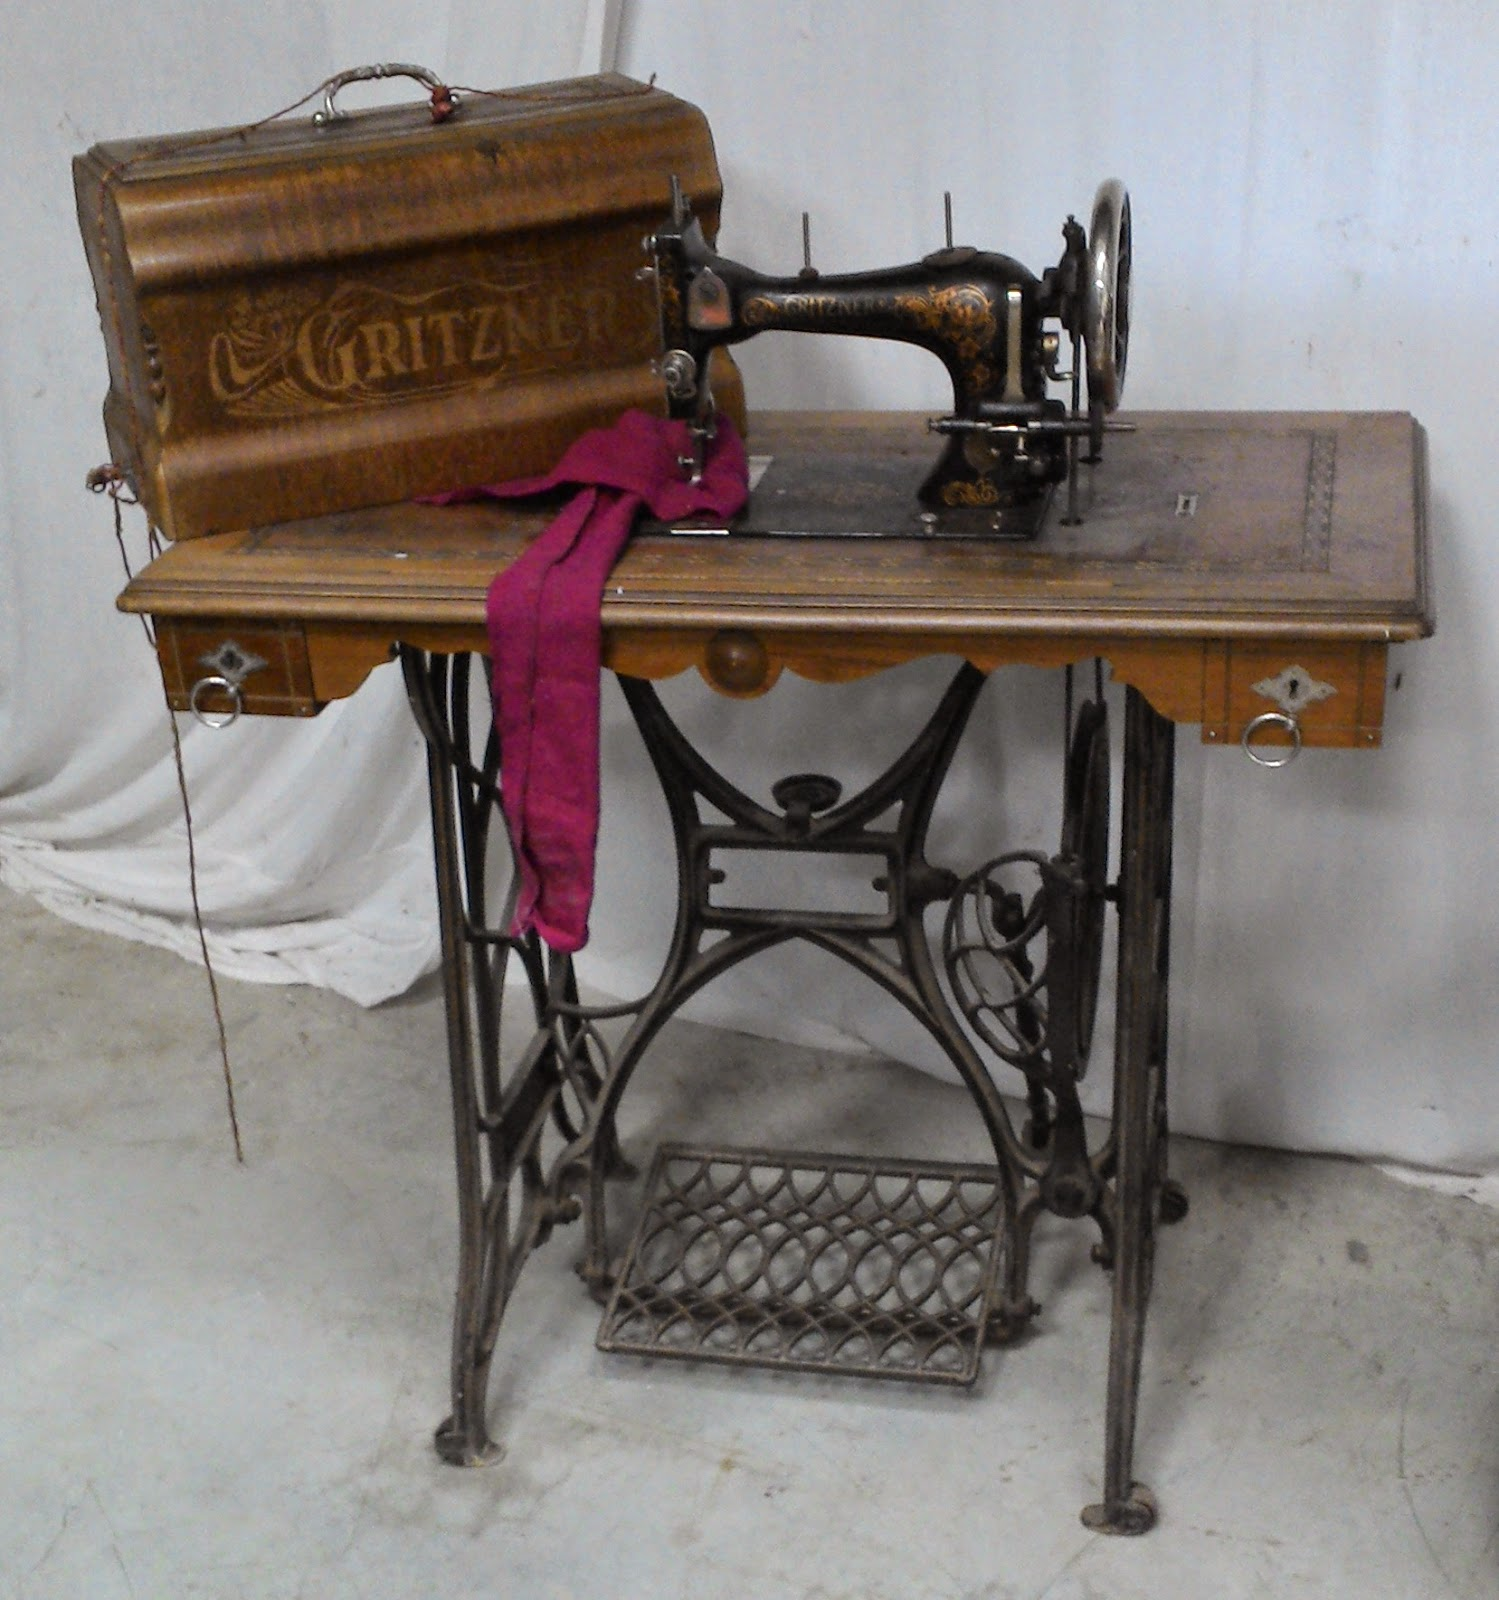 Ancienne Machine A Coudre machine a coudre ancienne gritzner annees 1900 durlach